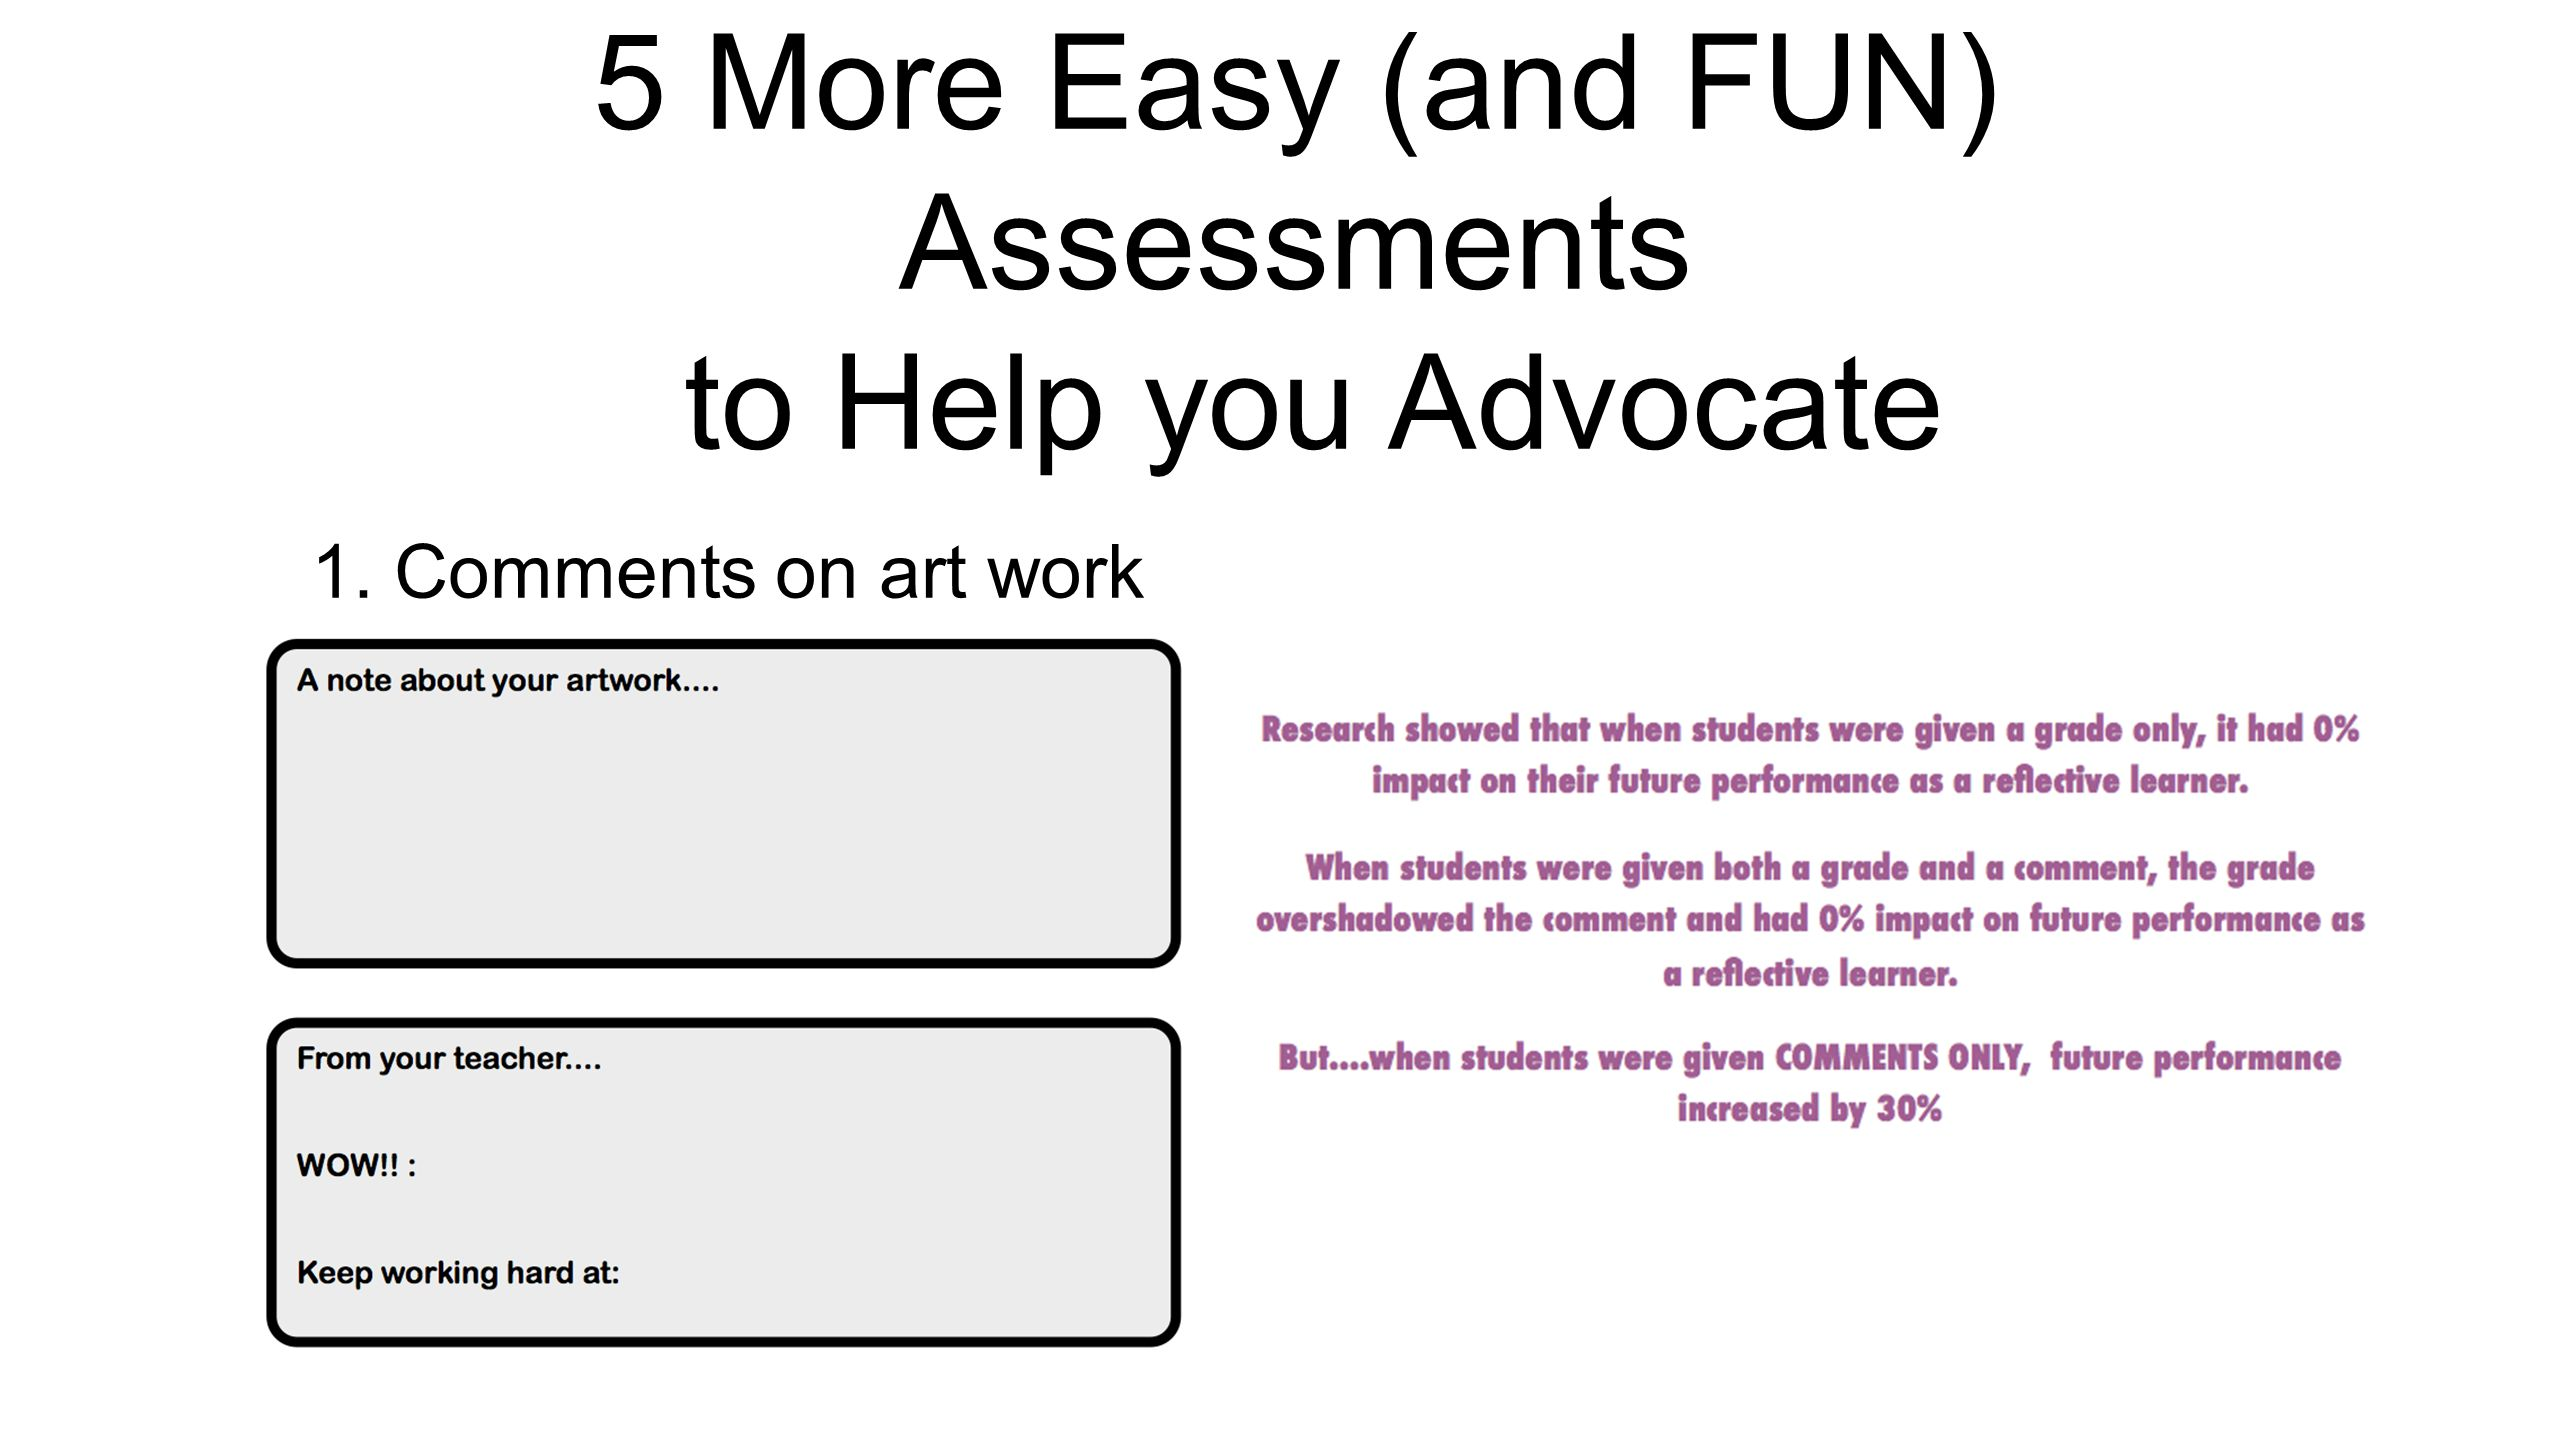 5 More Easy (and FUN) Assessments to Help you Advocate 1. Comments on art work